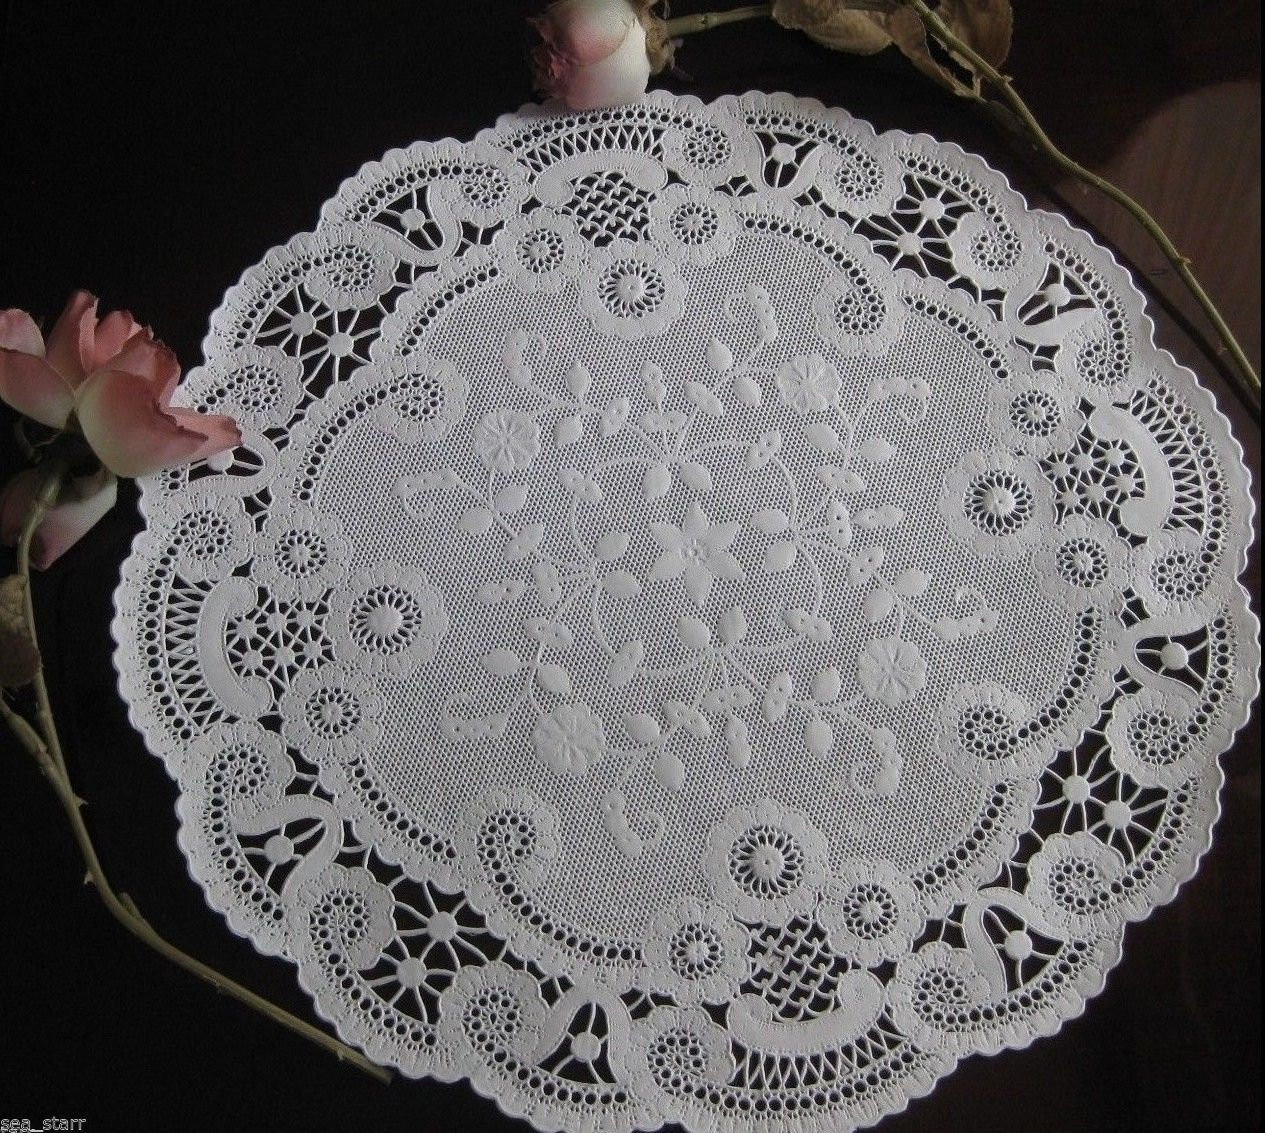 Paper Lace Doilies Awesome 12 Inch White French Paper Lace Dainty Doilies by Of New 46 Models Paper Lace Doilies